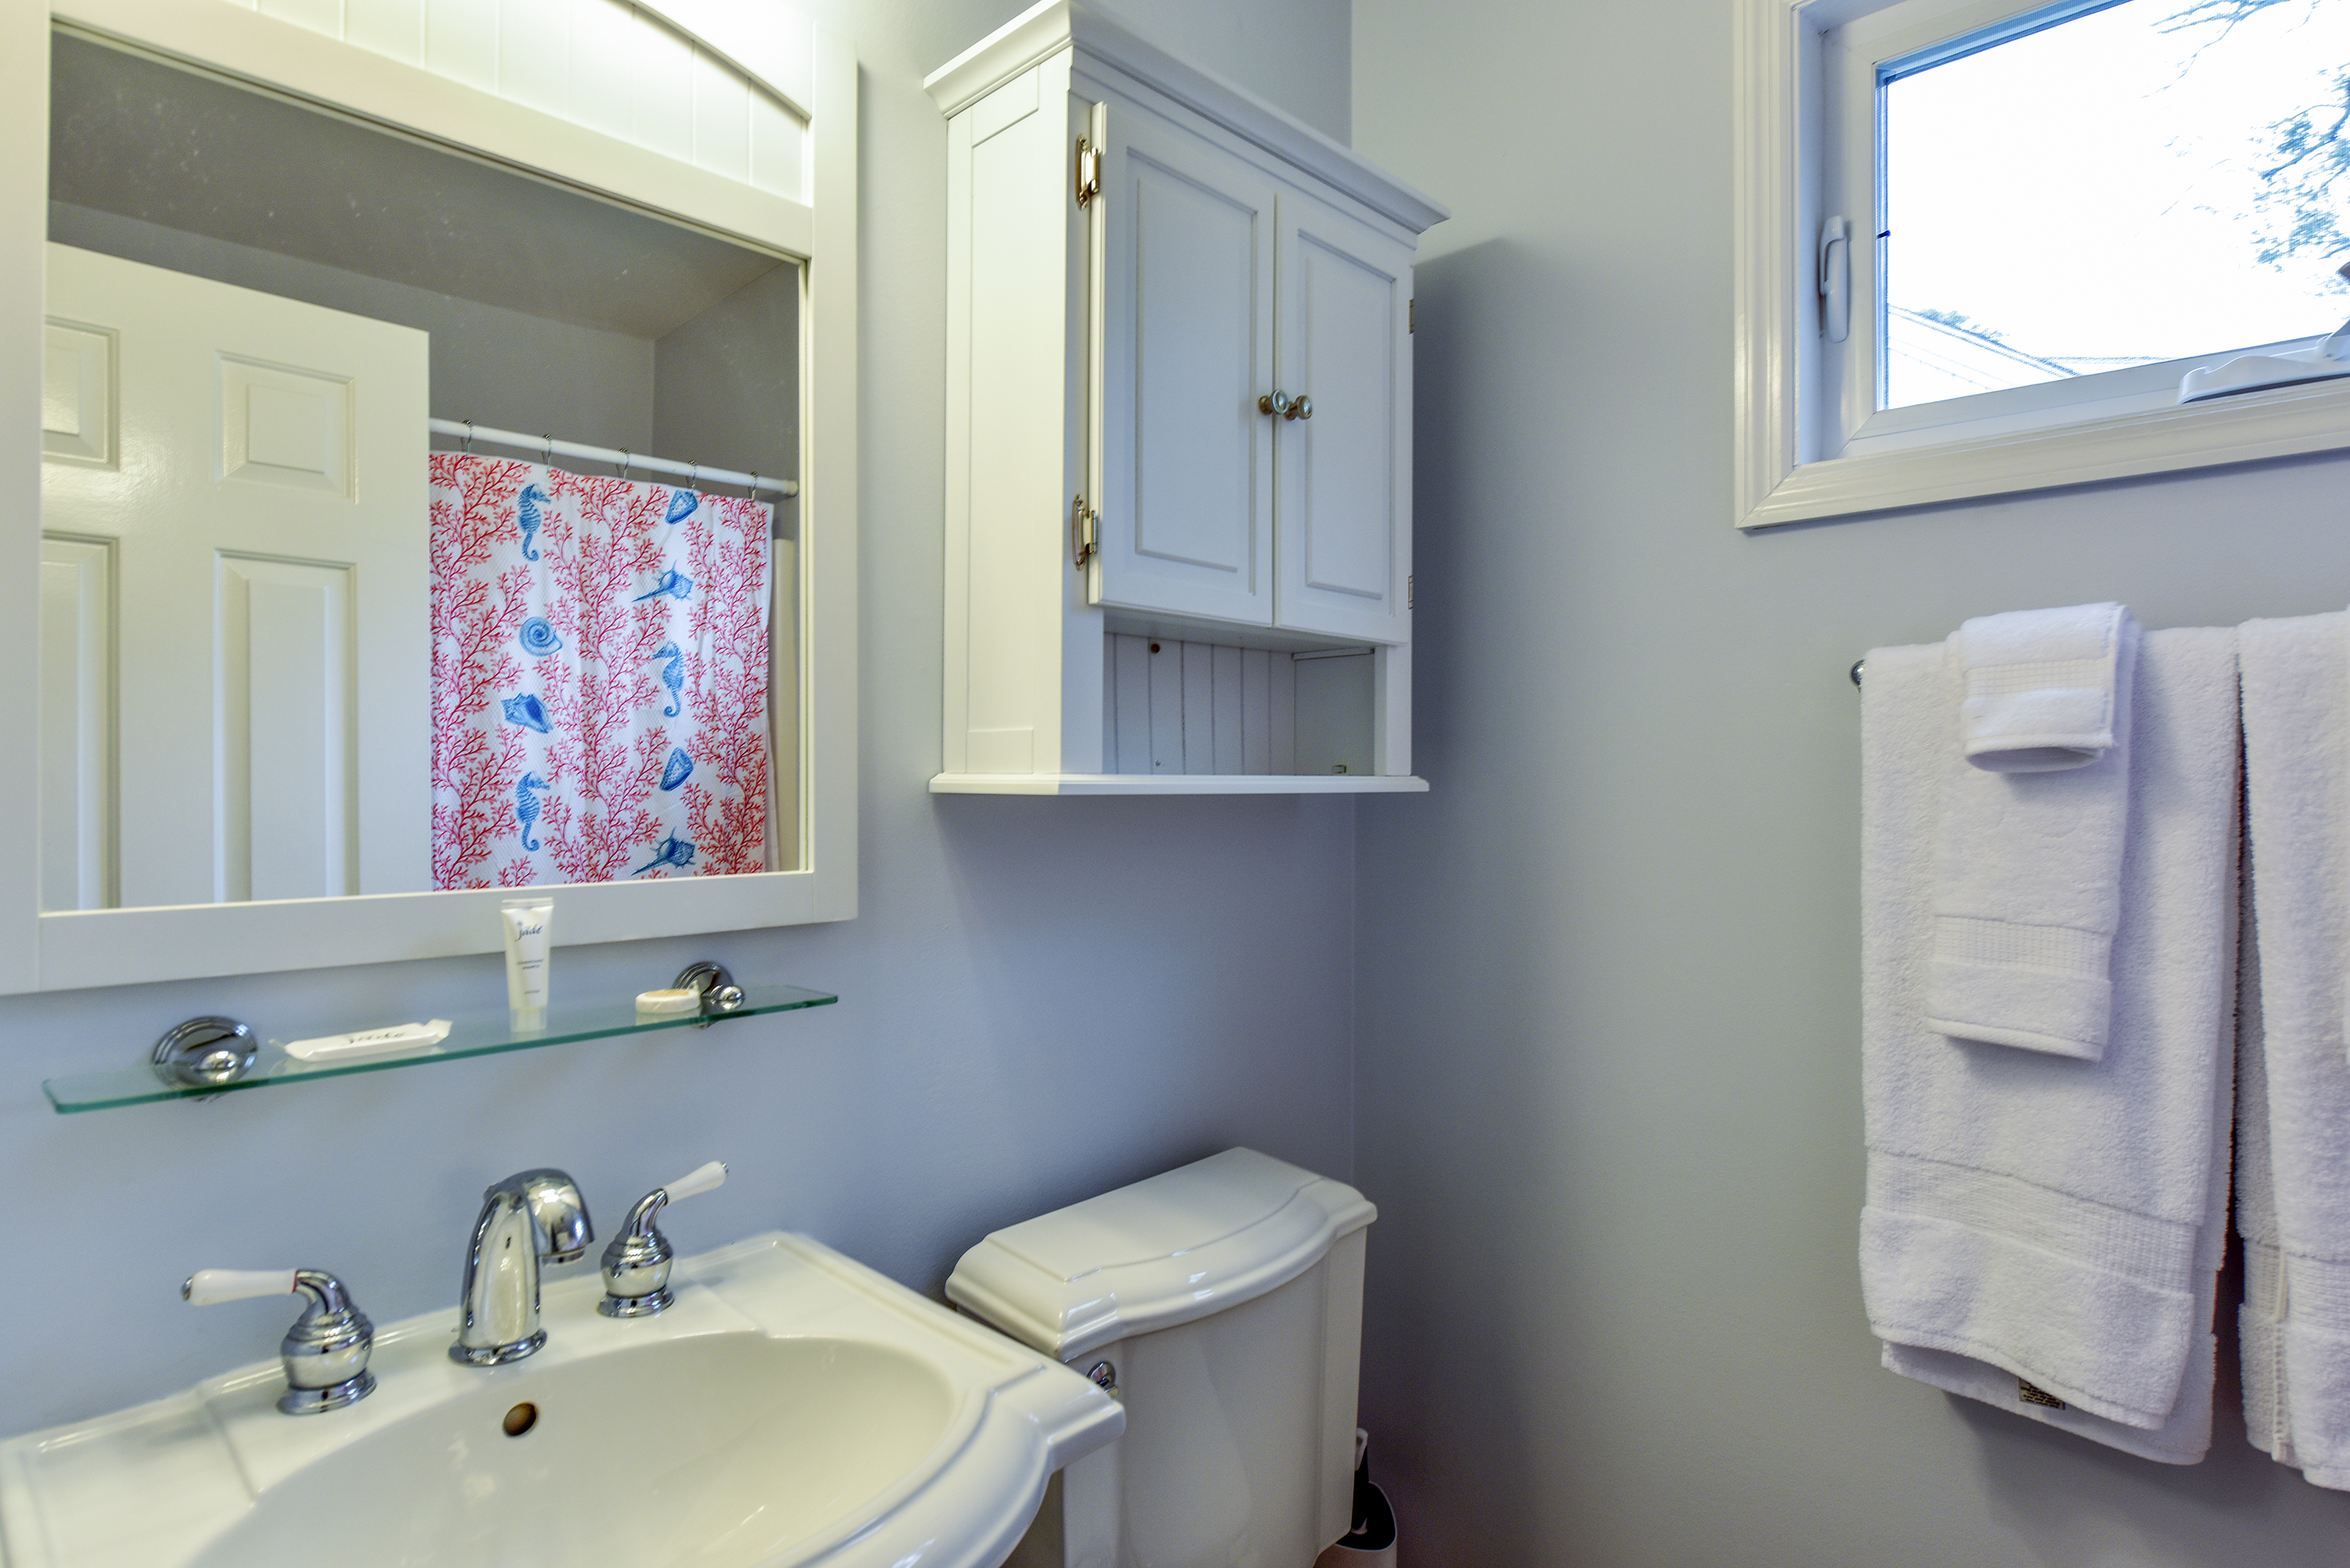 The hall bath is between the two guest bedrooms.  It is a full bath with a tub/shower combo.